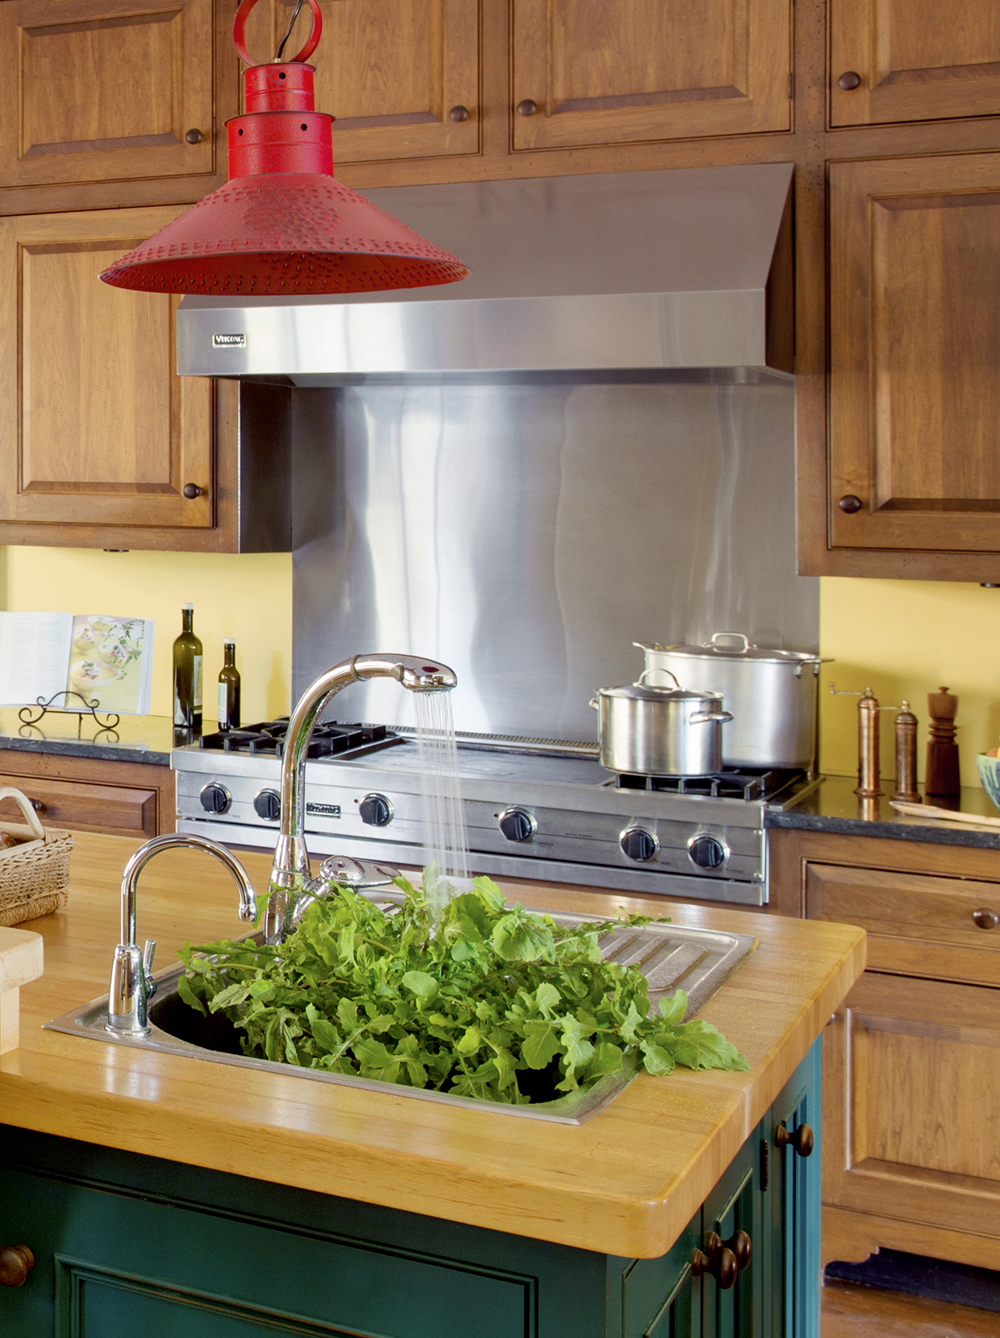 stainless steel stovetop kitchen backsplash by Elizabeth Swartz Interiors